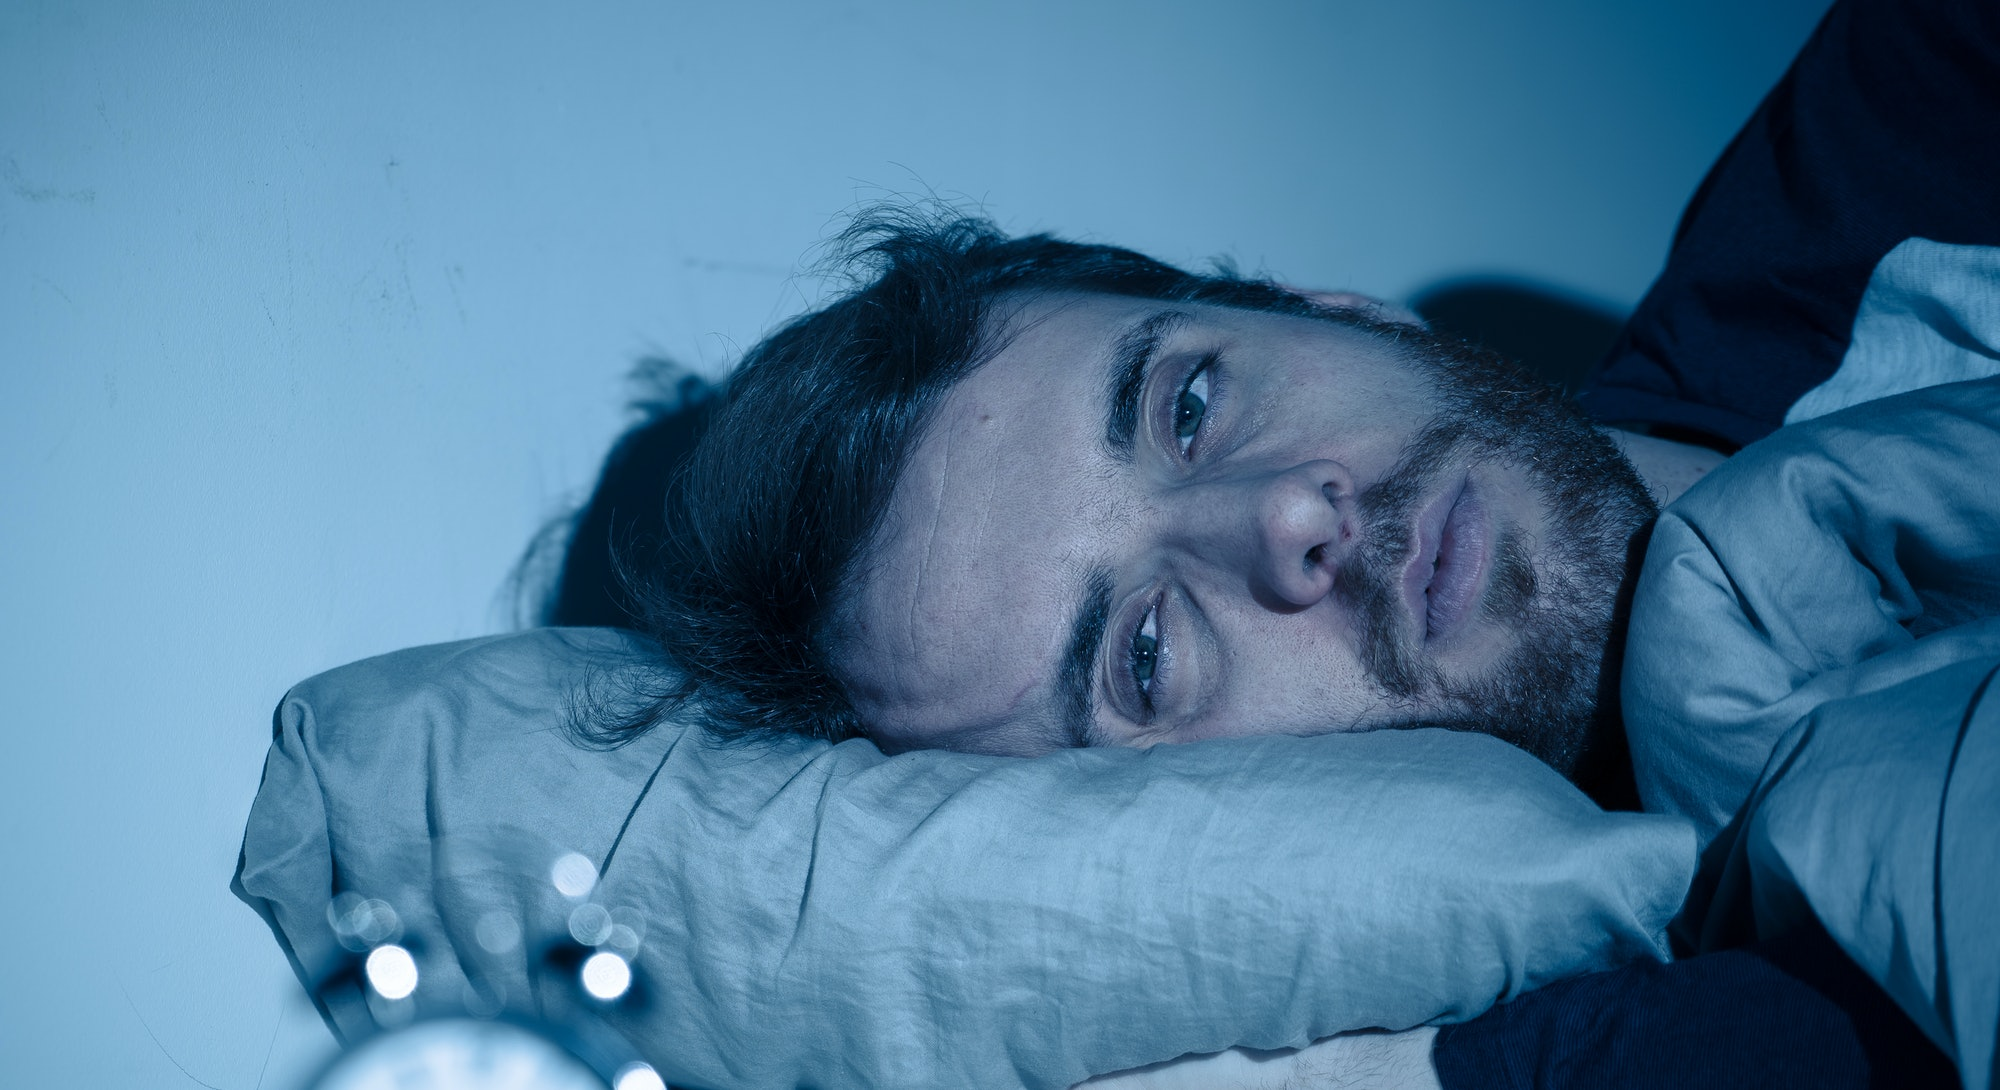 Sleepless and desperate young caucasian man awake at night not able to sleep, feeling frustrated and...